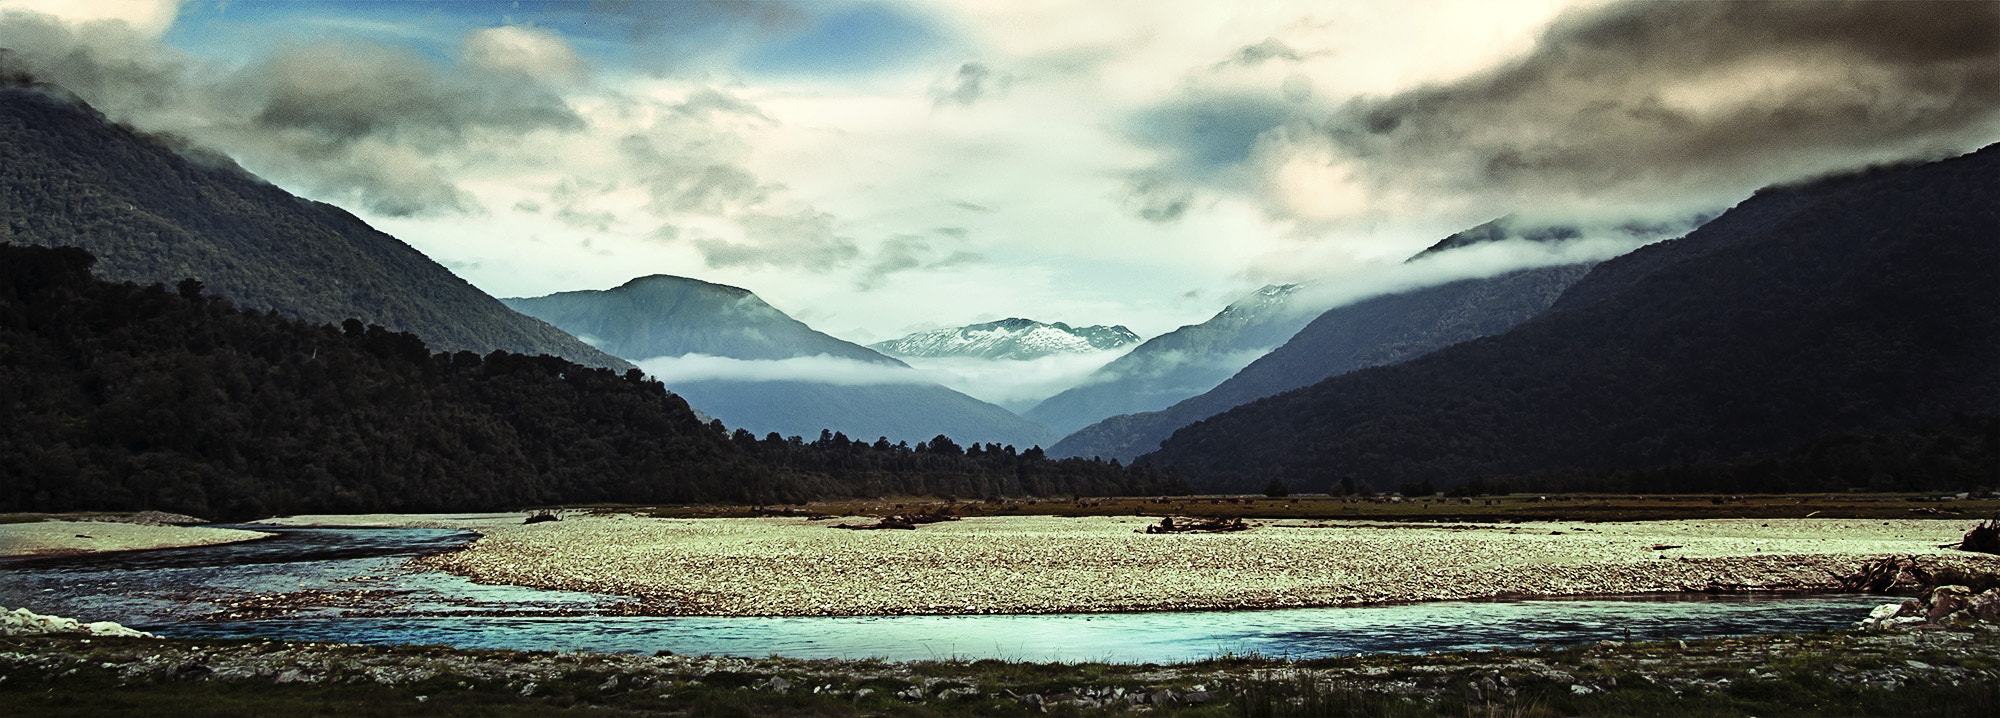 Photograph New Zealand Creek by Lars C. on 500px